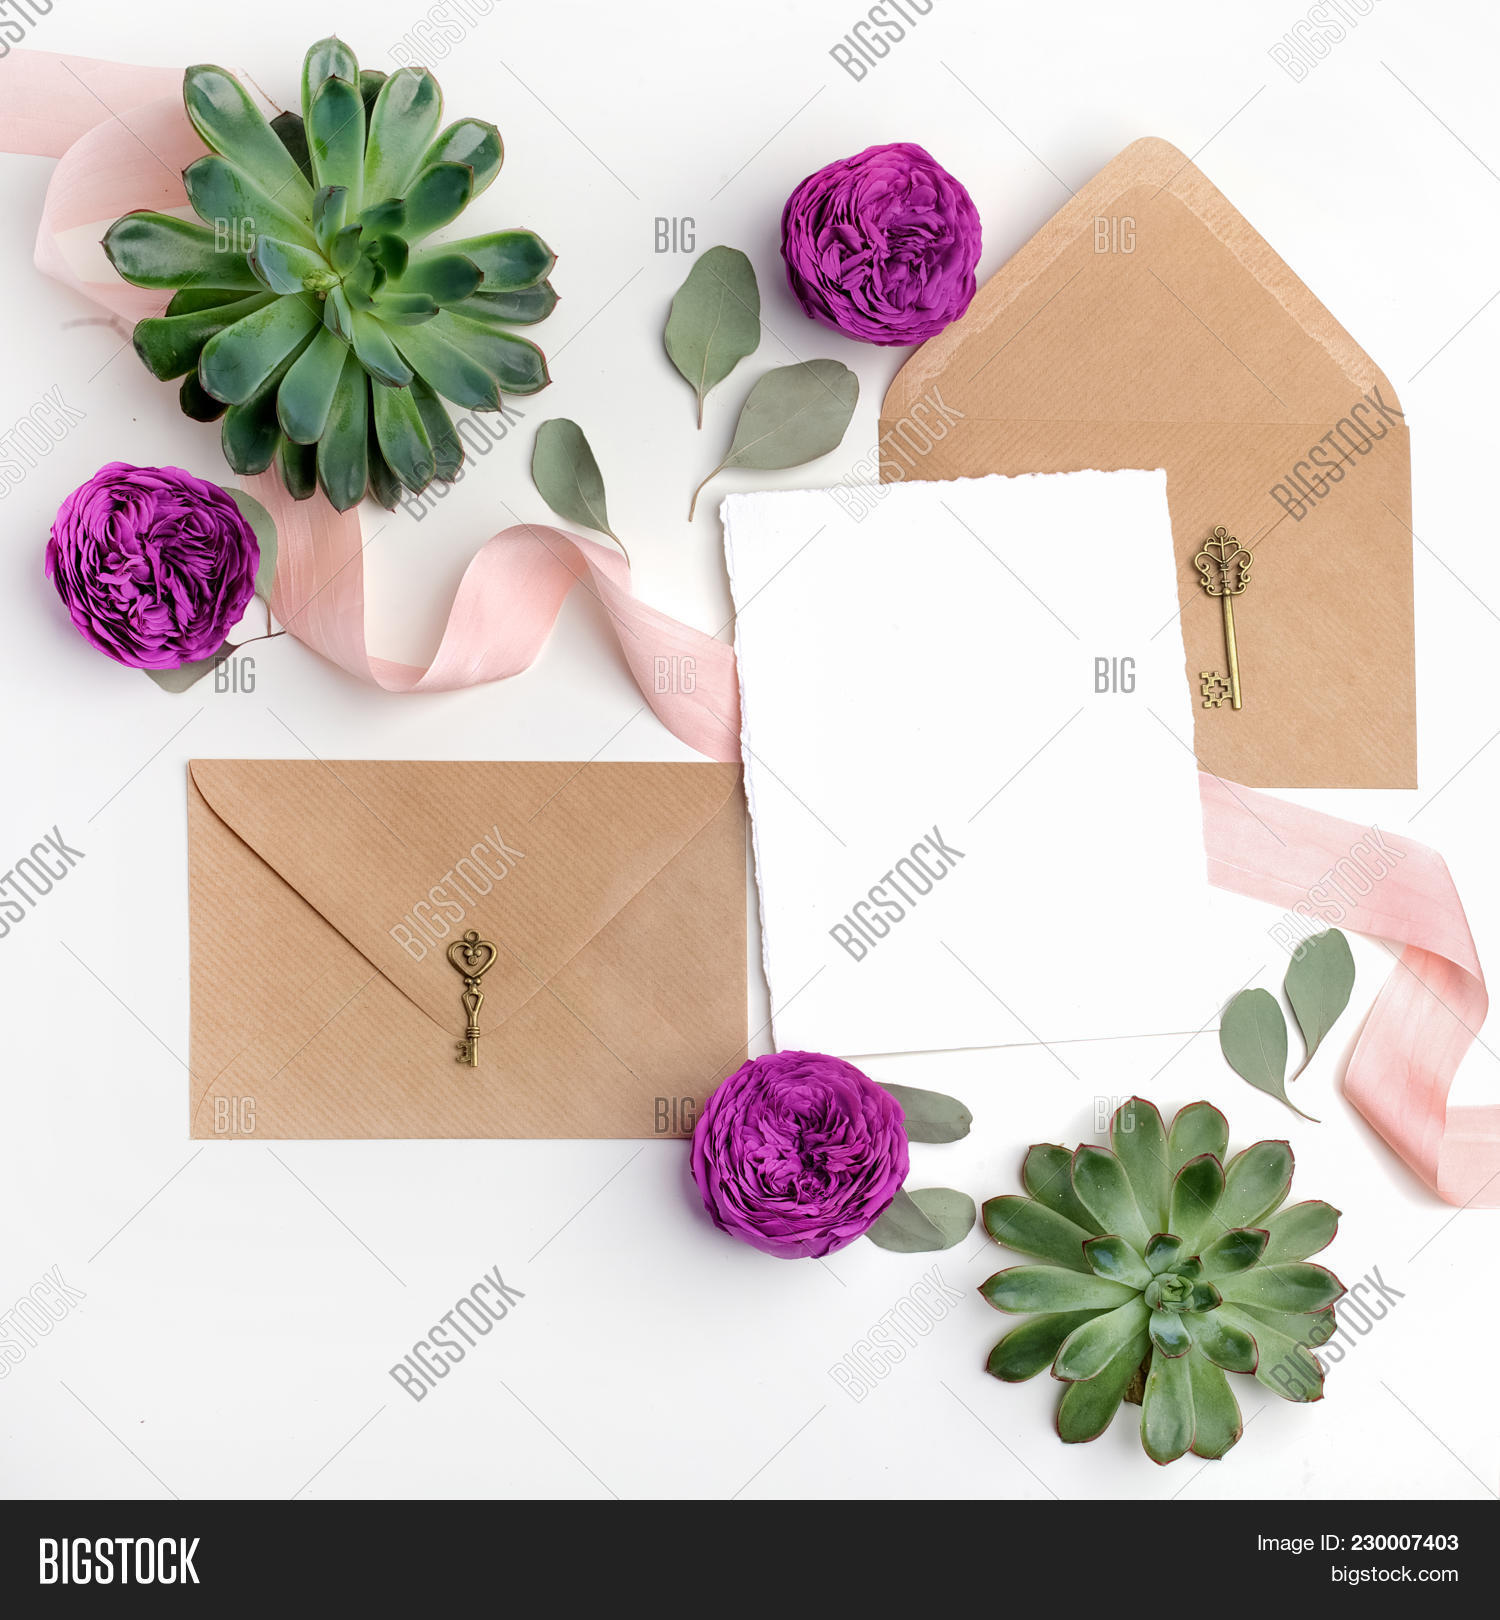 Flat Lay Shot Letter Image & Photo (Free Trial) | Bigstock